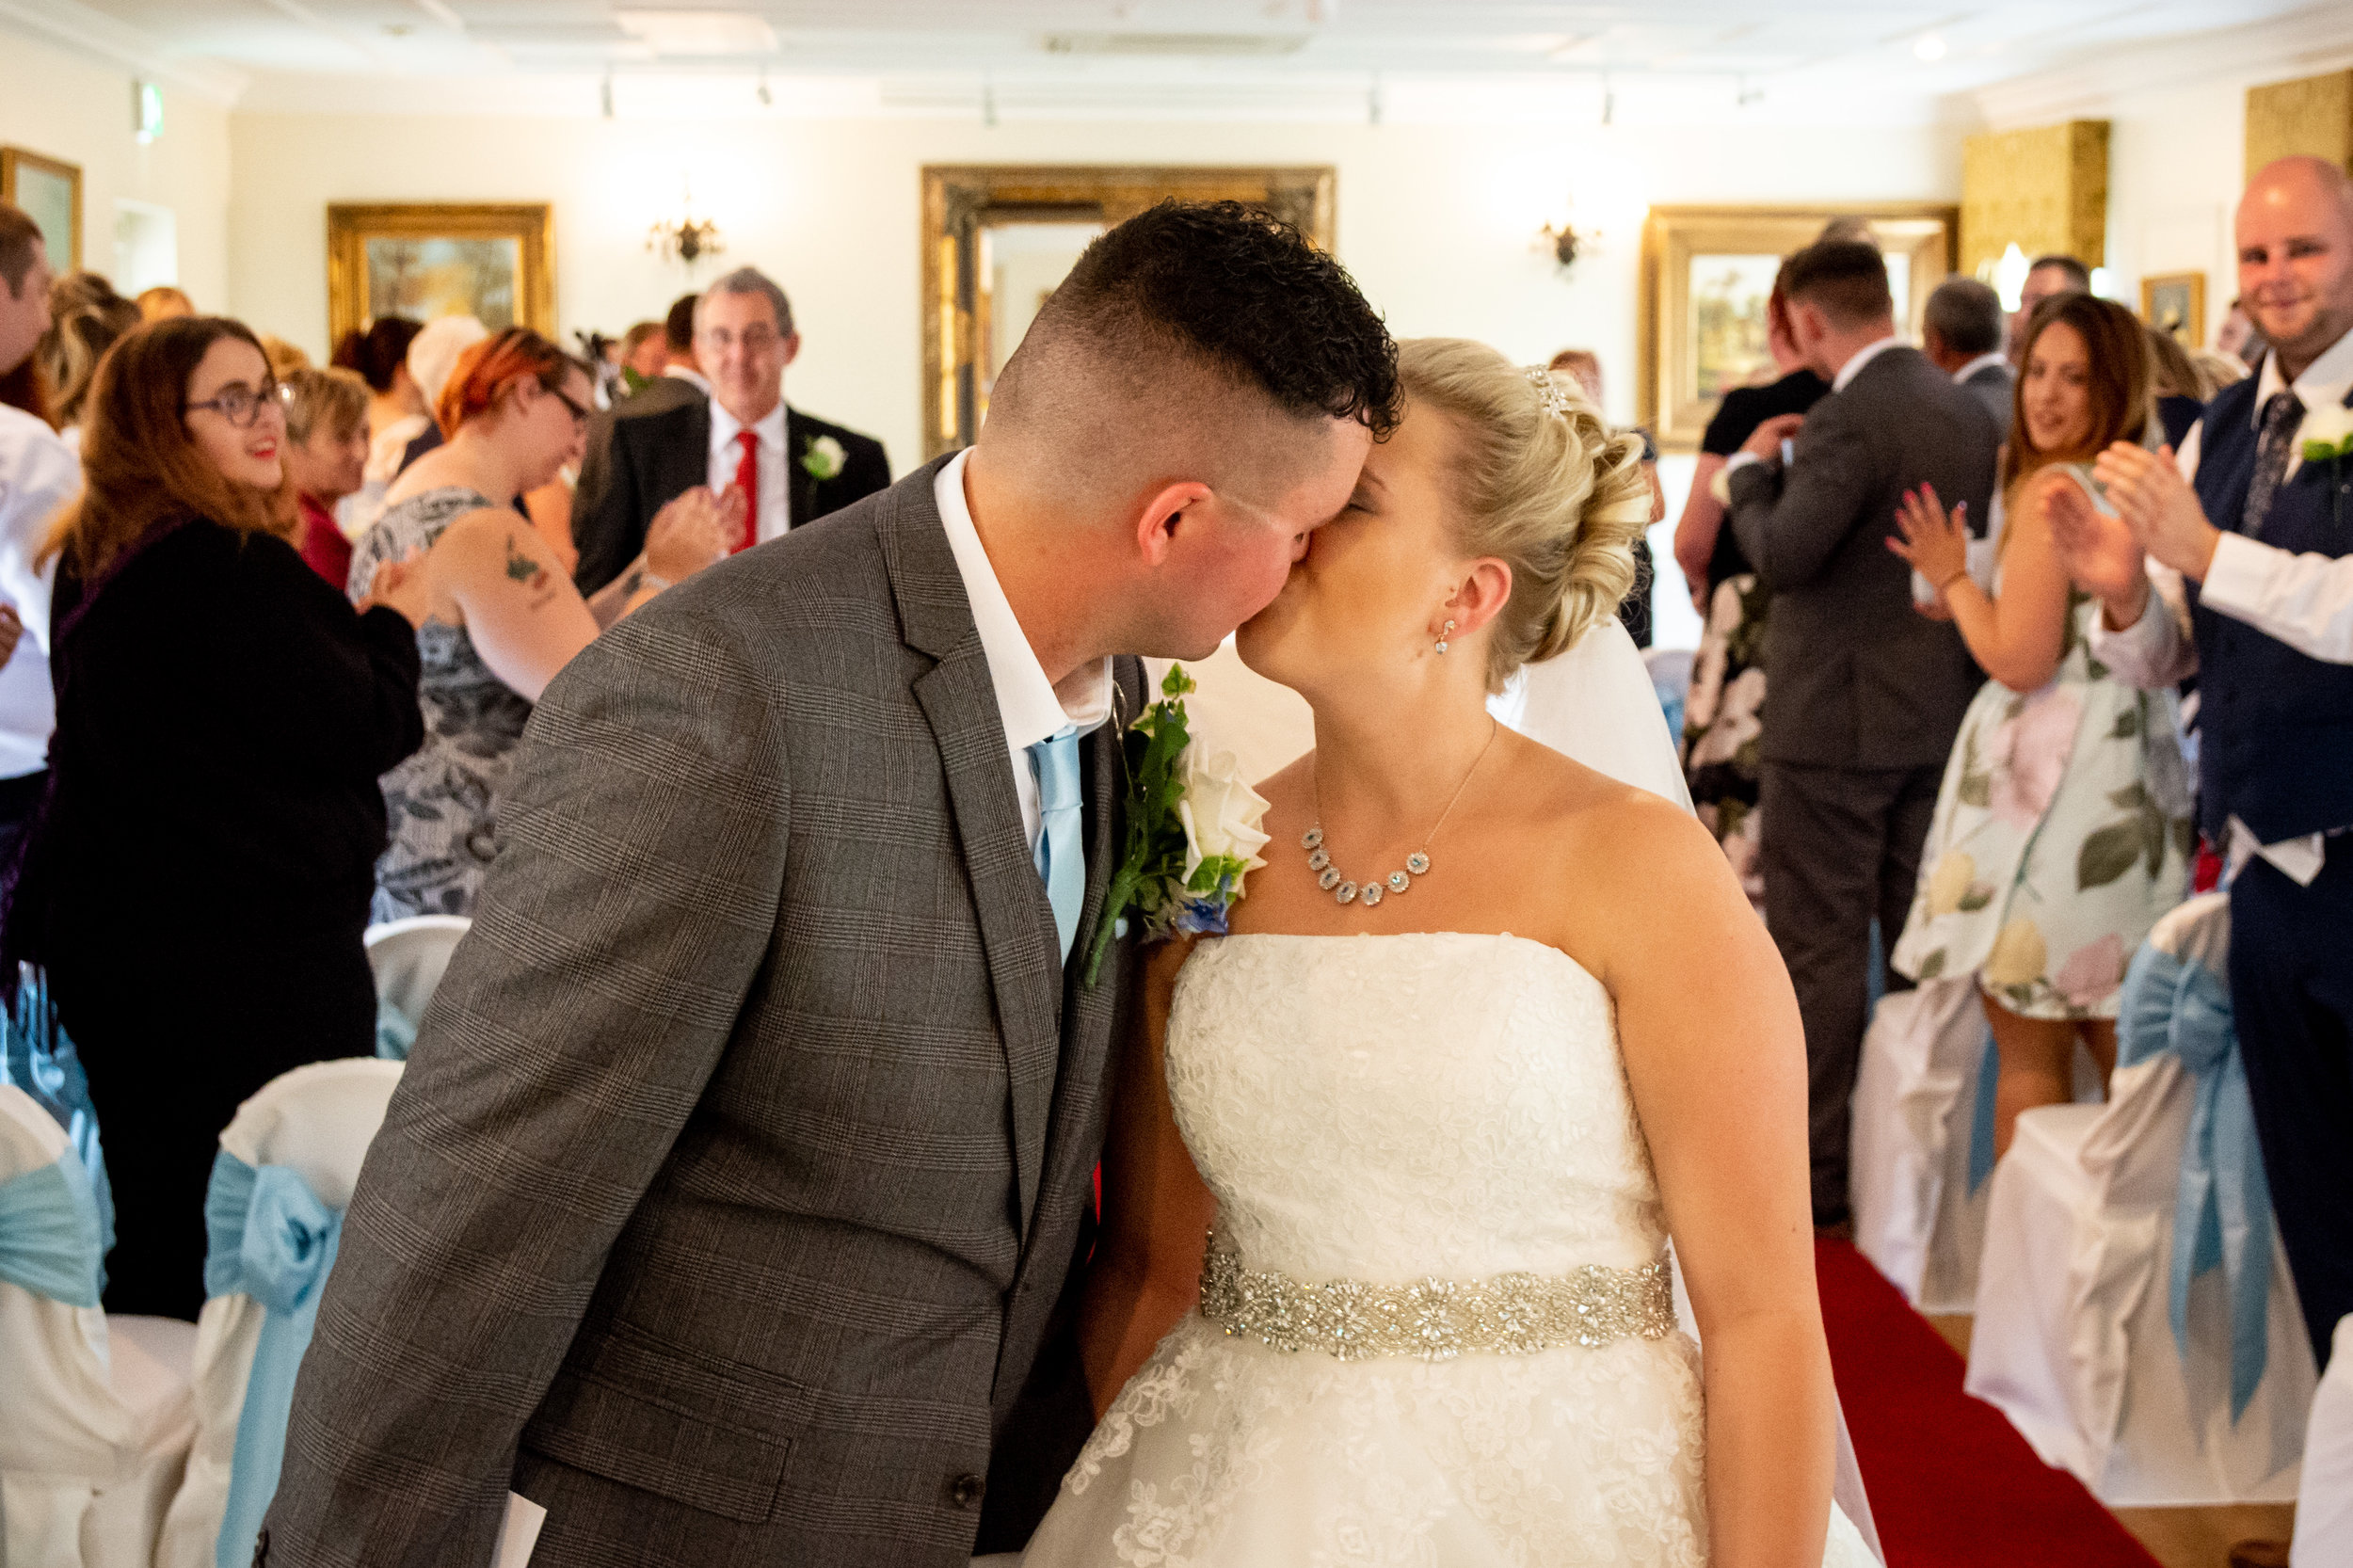 A D Hall Photography.  Lincolnshire wedding photographer.  UK and destination wedding photography.